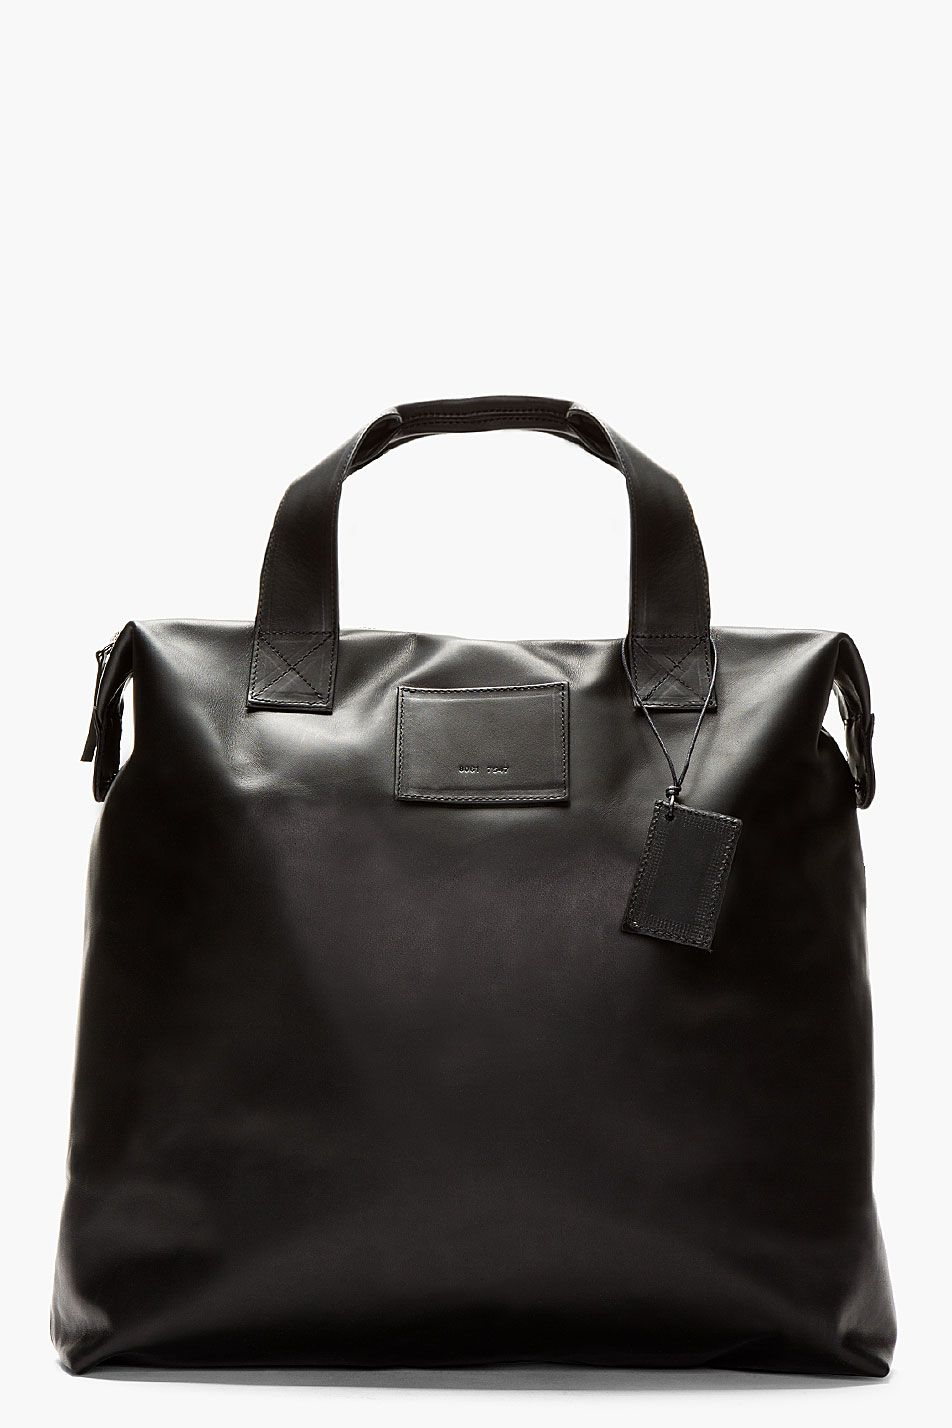 COMMON PROJECTS Black Supple Leather Tote